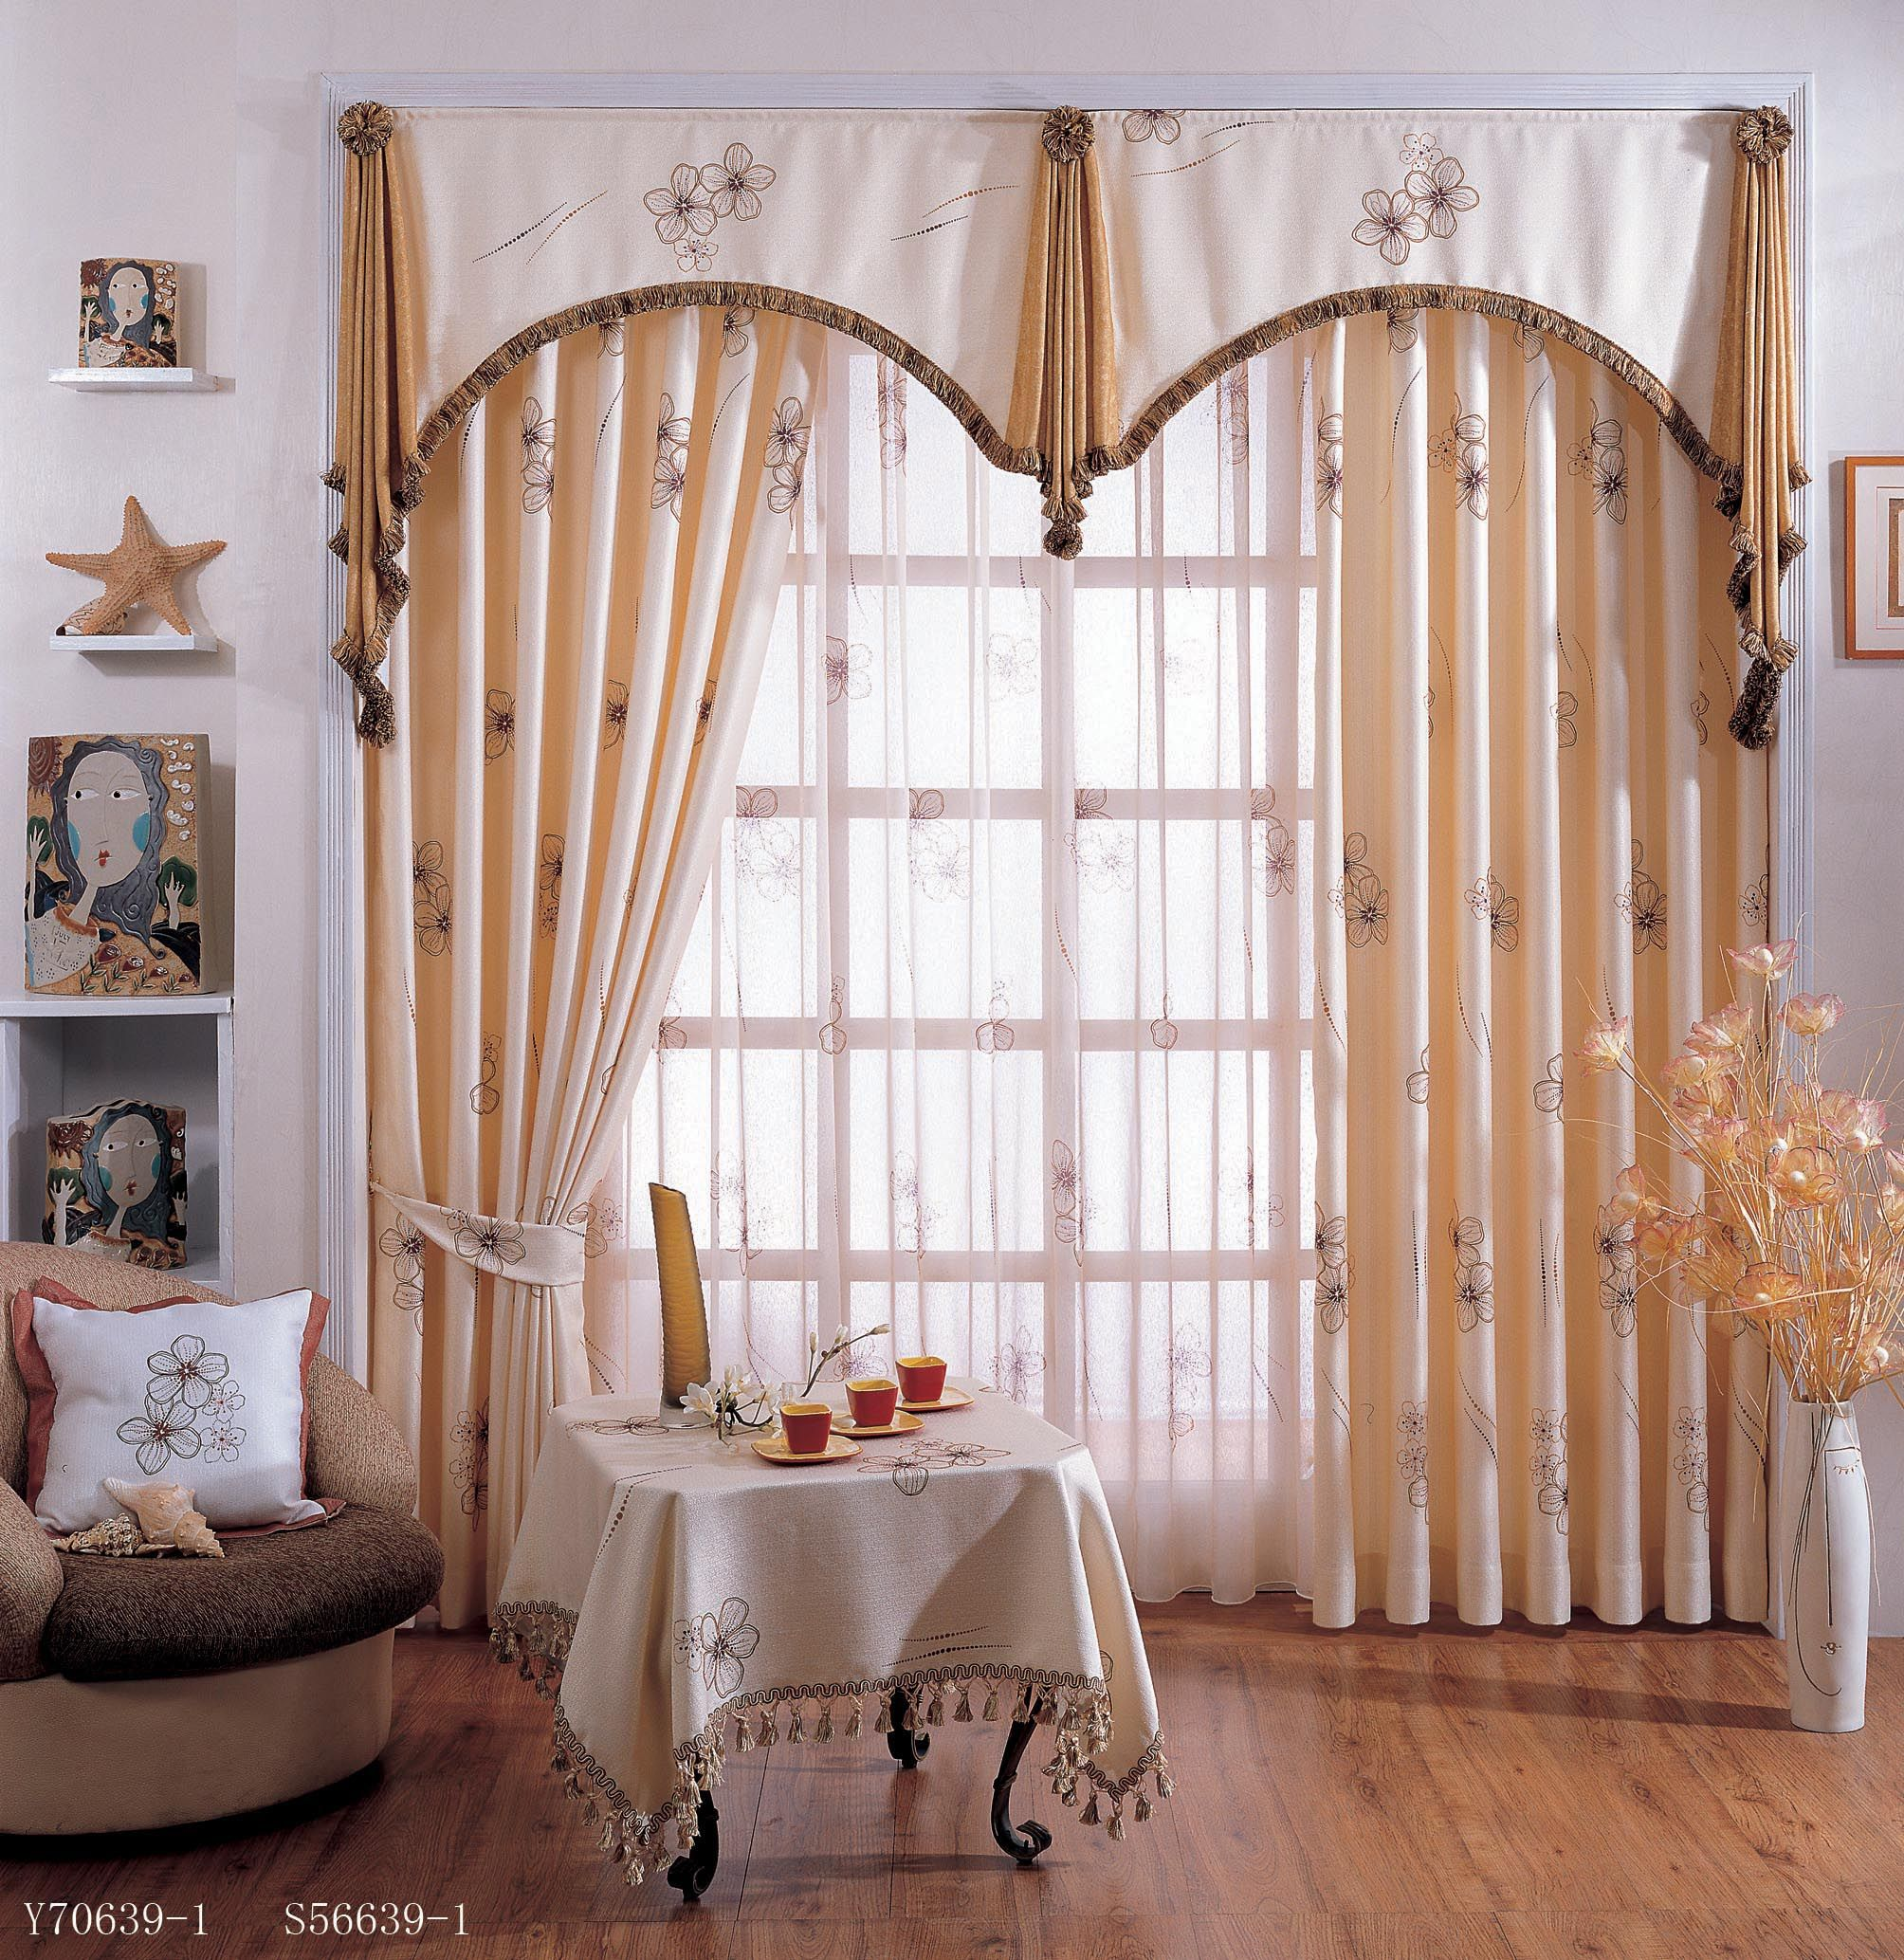 living room window valance ideas%0A Curtain Valances for Living Room